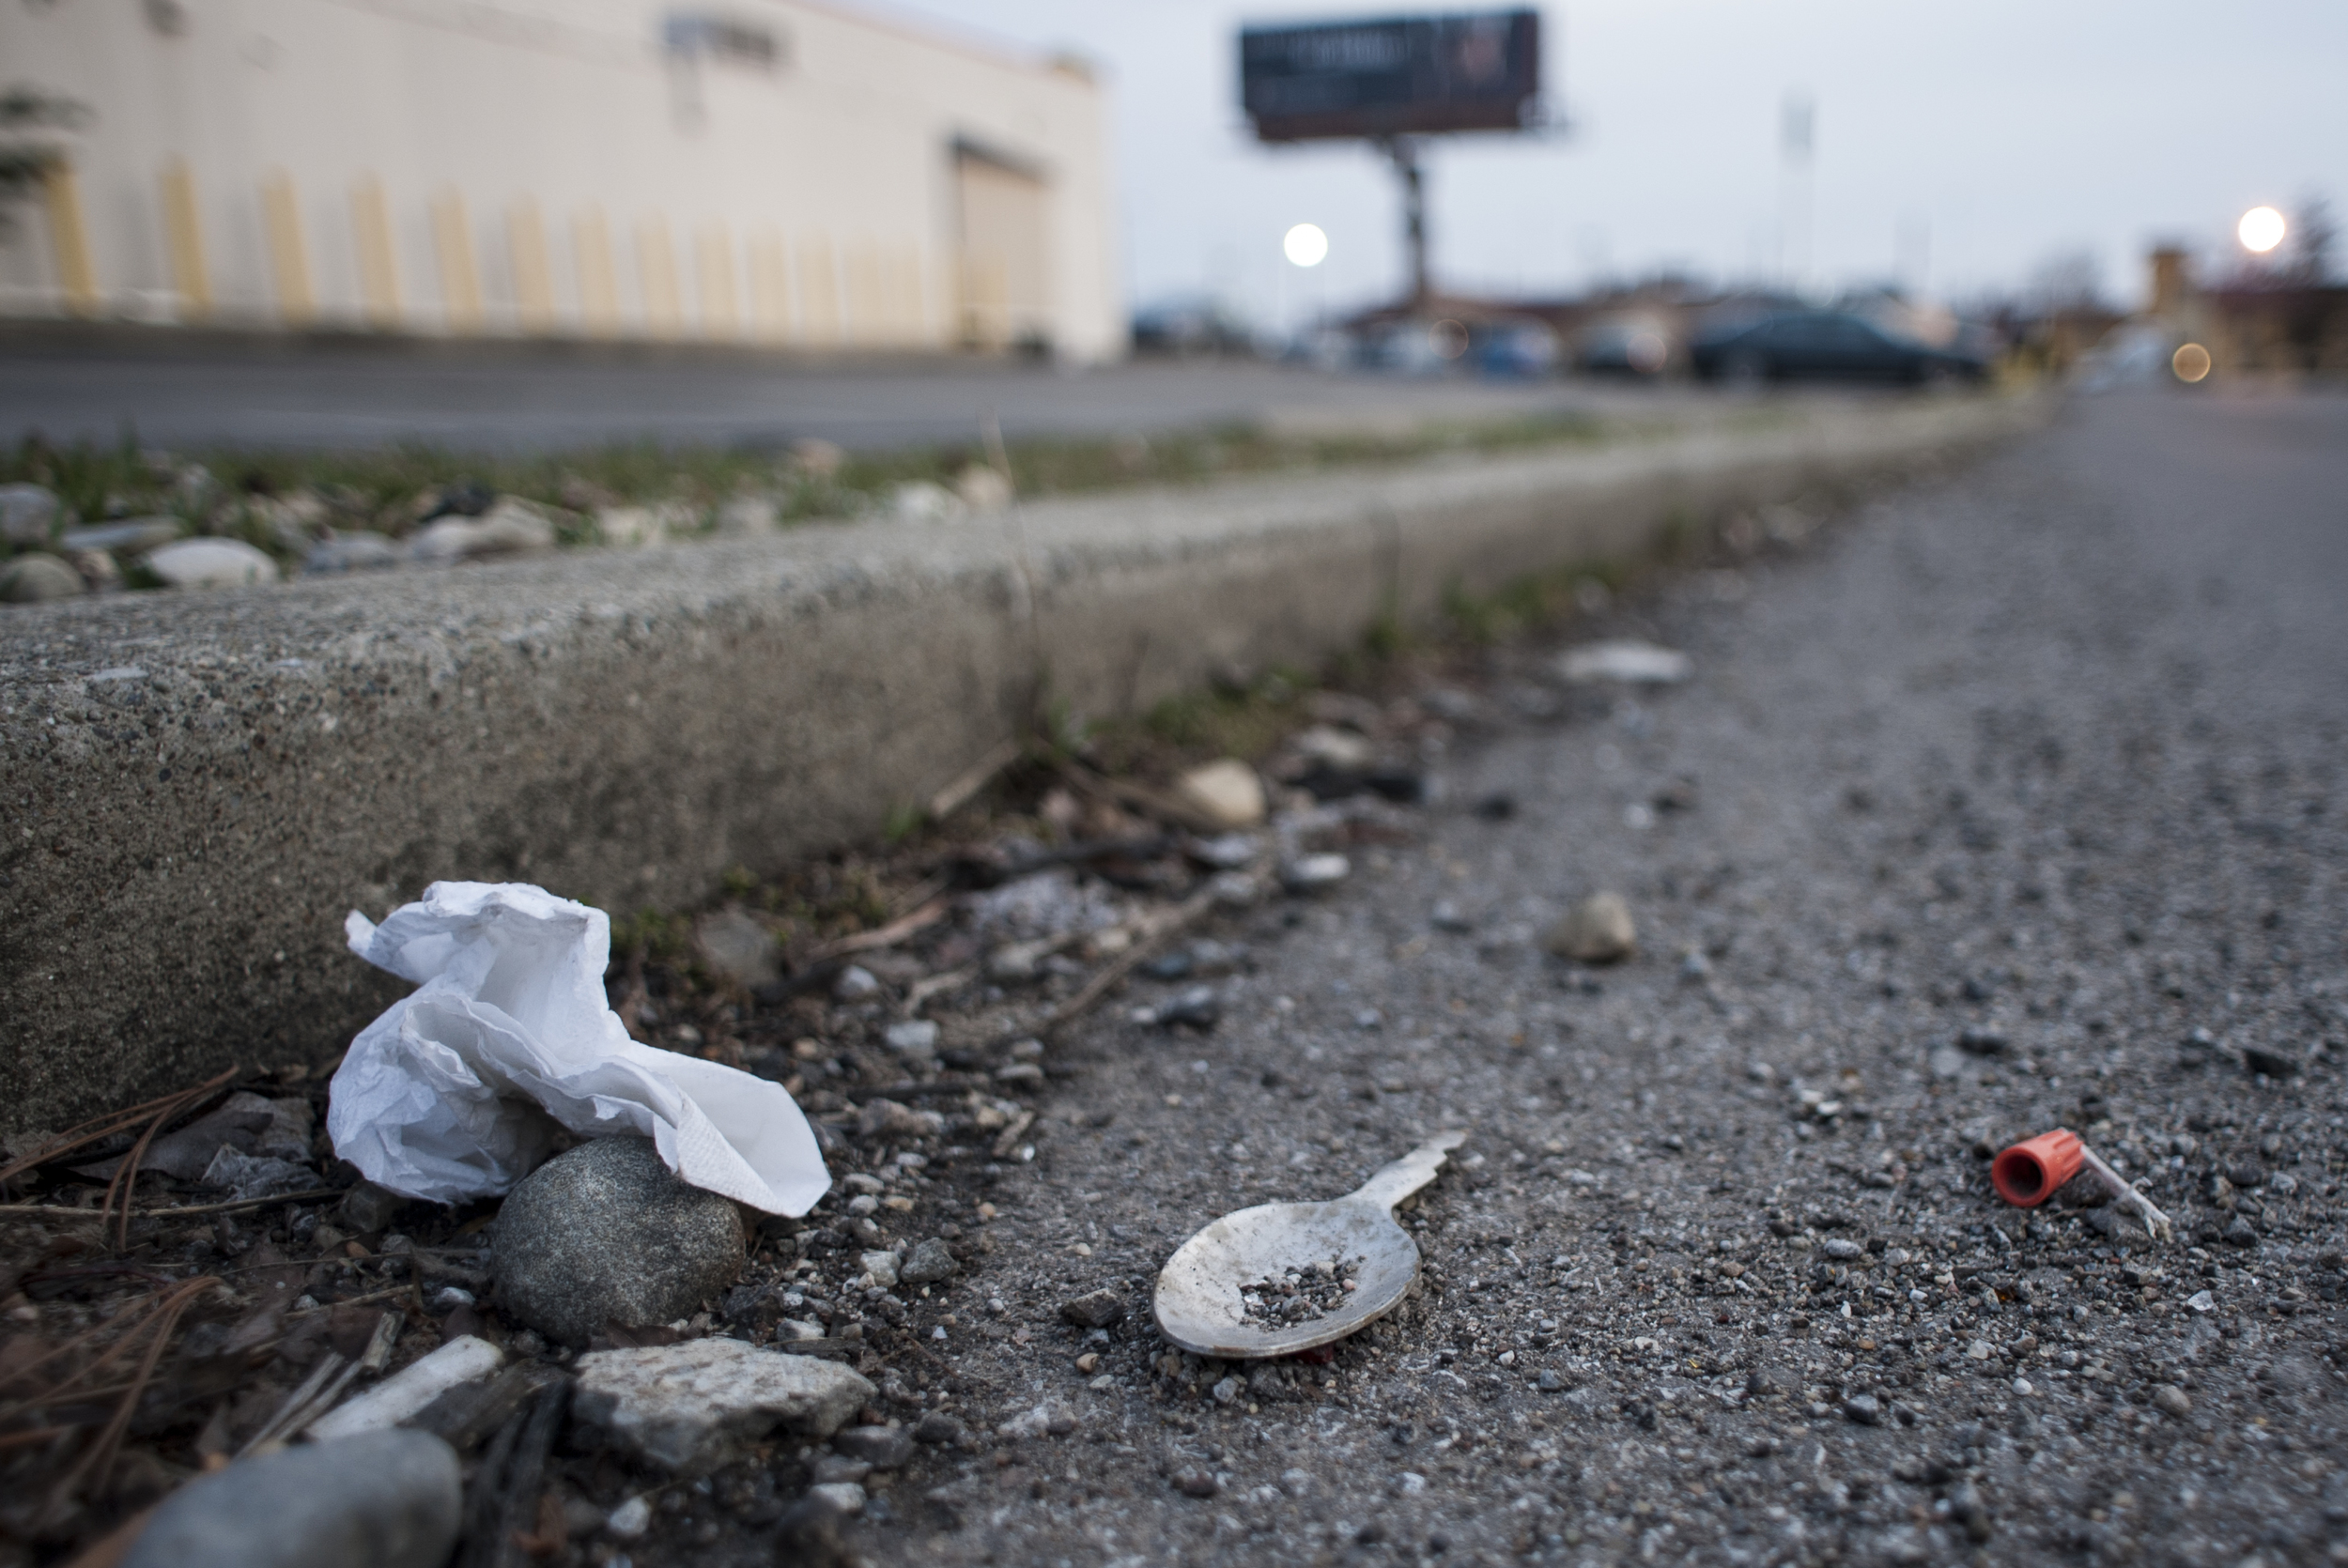 A spoon that was most likely used to prepare a dose of heroin lies next to a syringe cap in a parking lot.